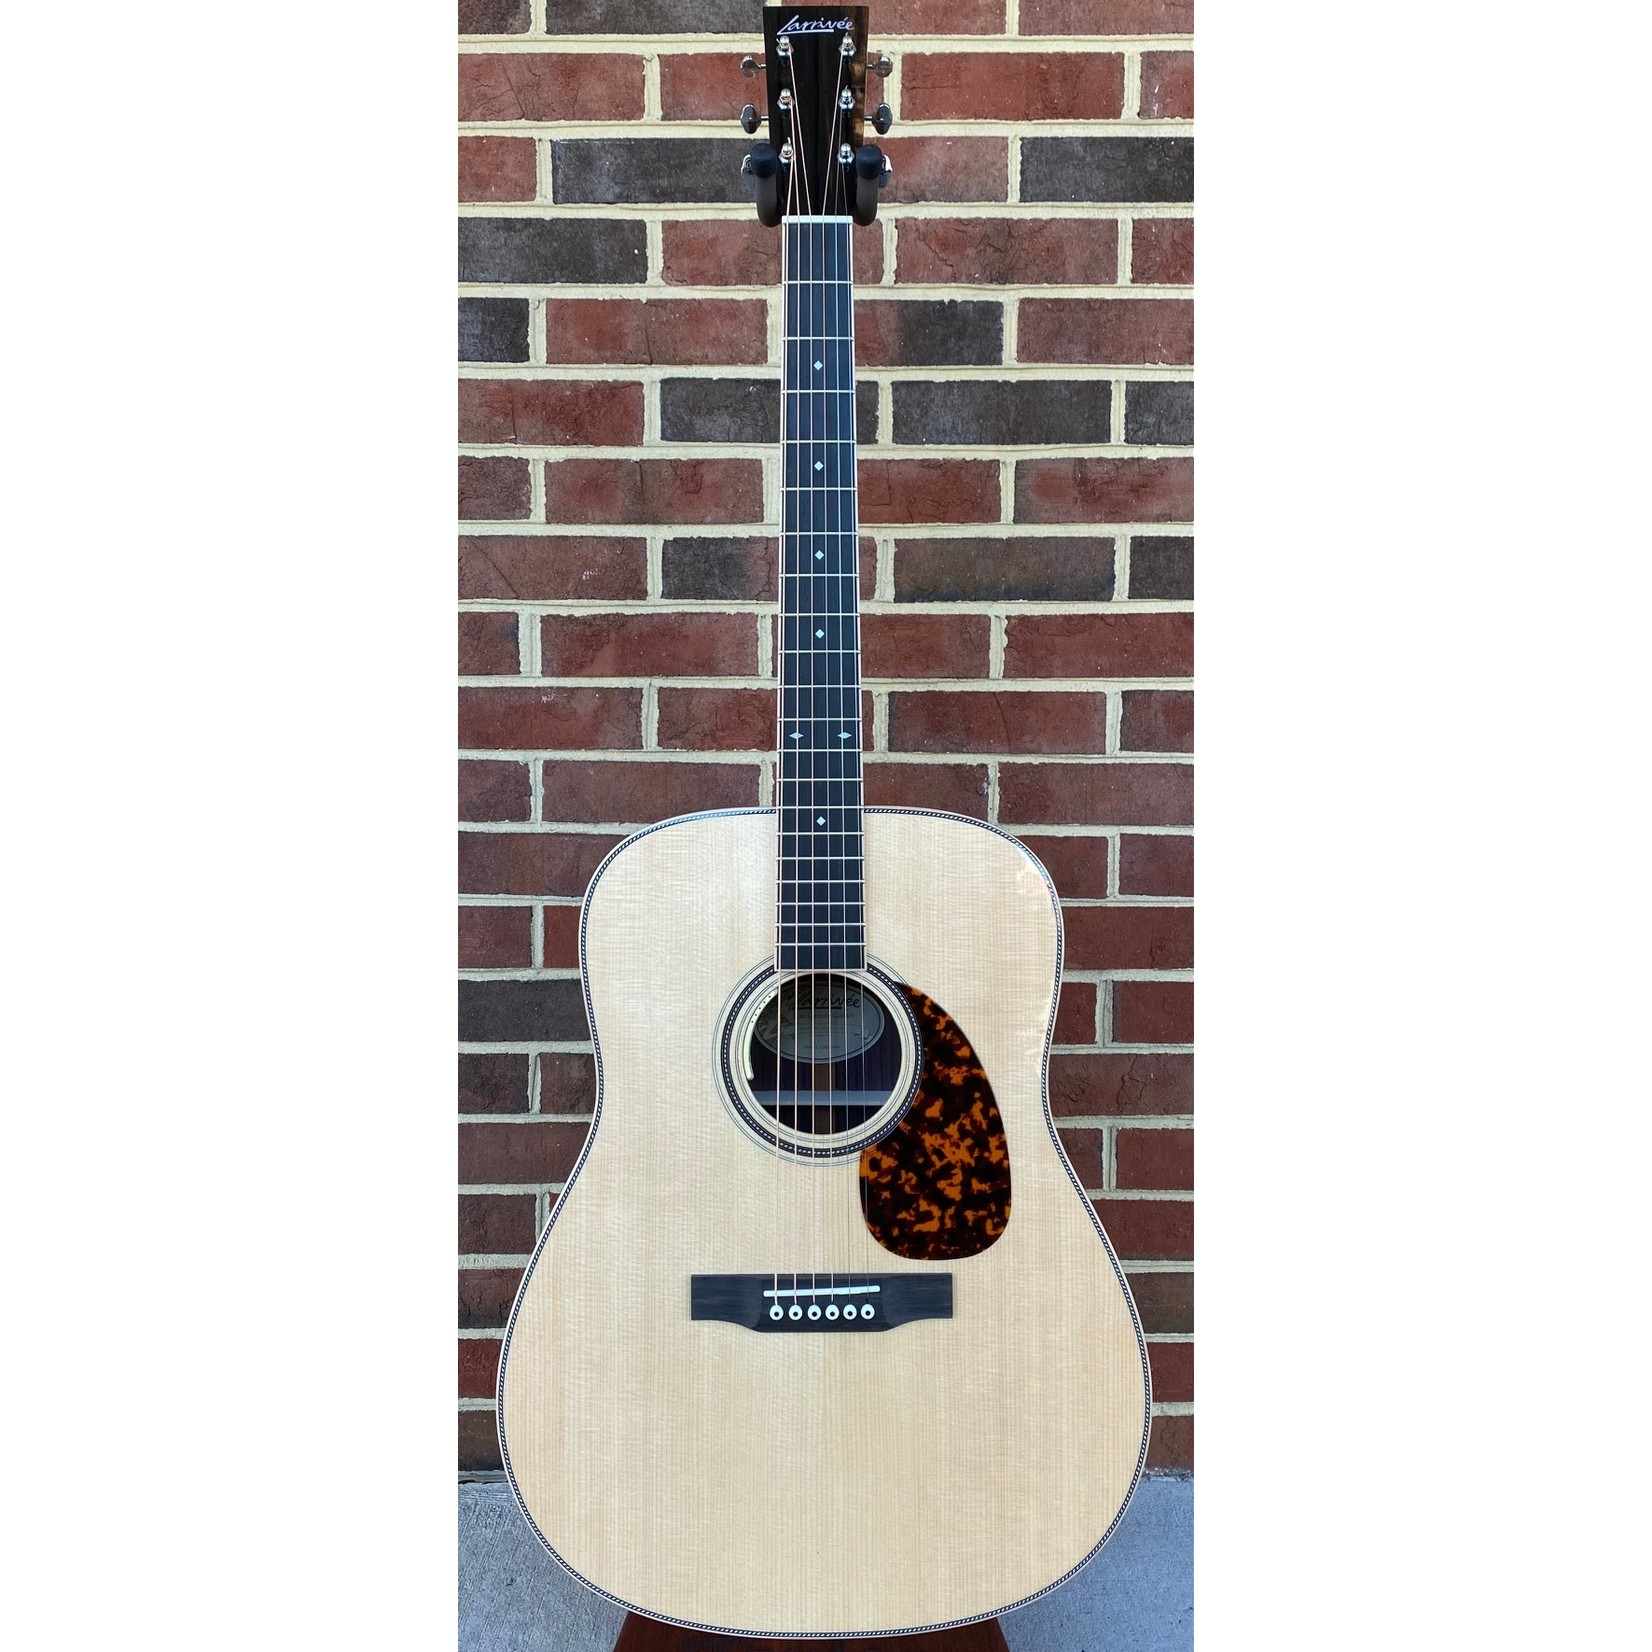 Larrivee Larrivee D-44RW, Indian Rosewood Back and Sides, Sitka Spruce Top, All Gloss, LR Baggs Anthem No Cut Electronics, Hardshell Case